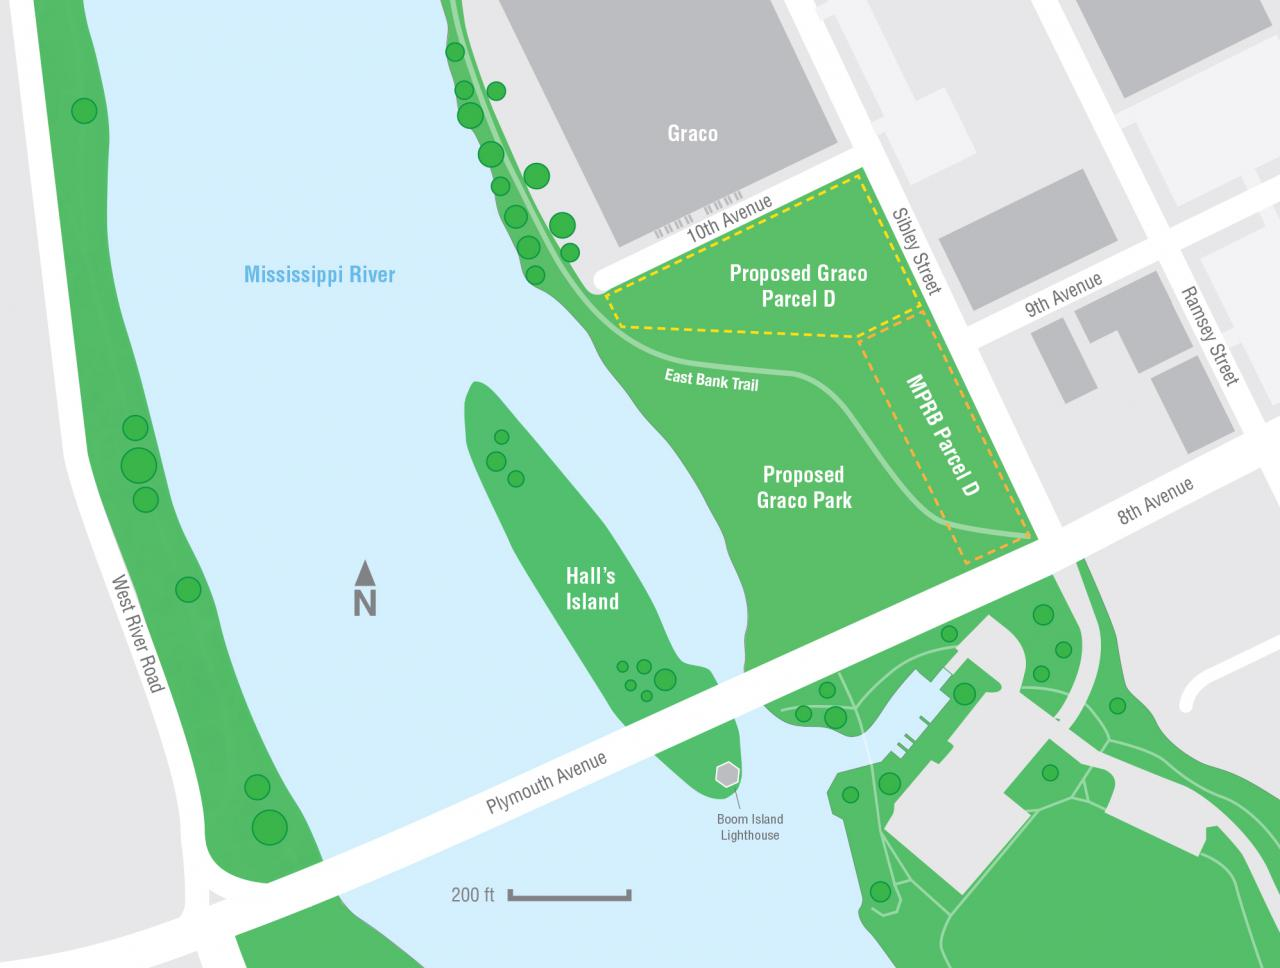 A map showing the former Scherer Brothers site and the parcel Graco may purchase from the park board.